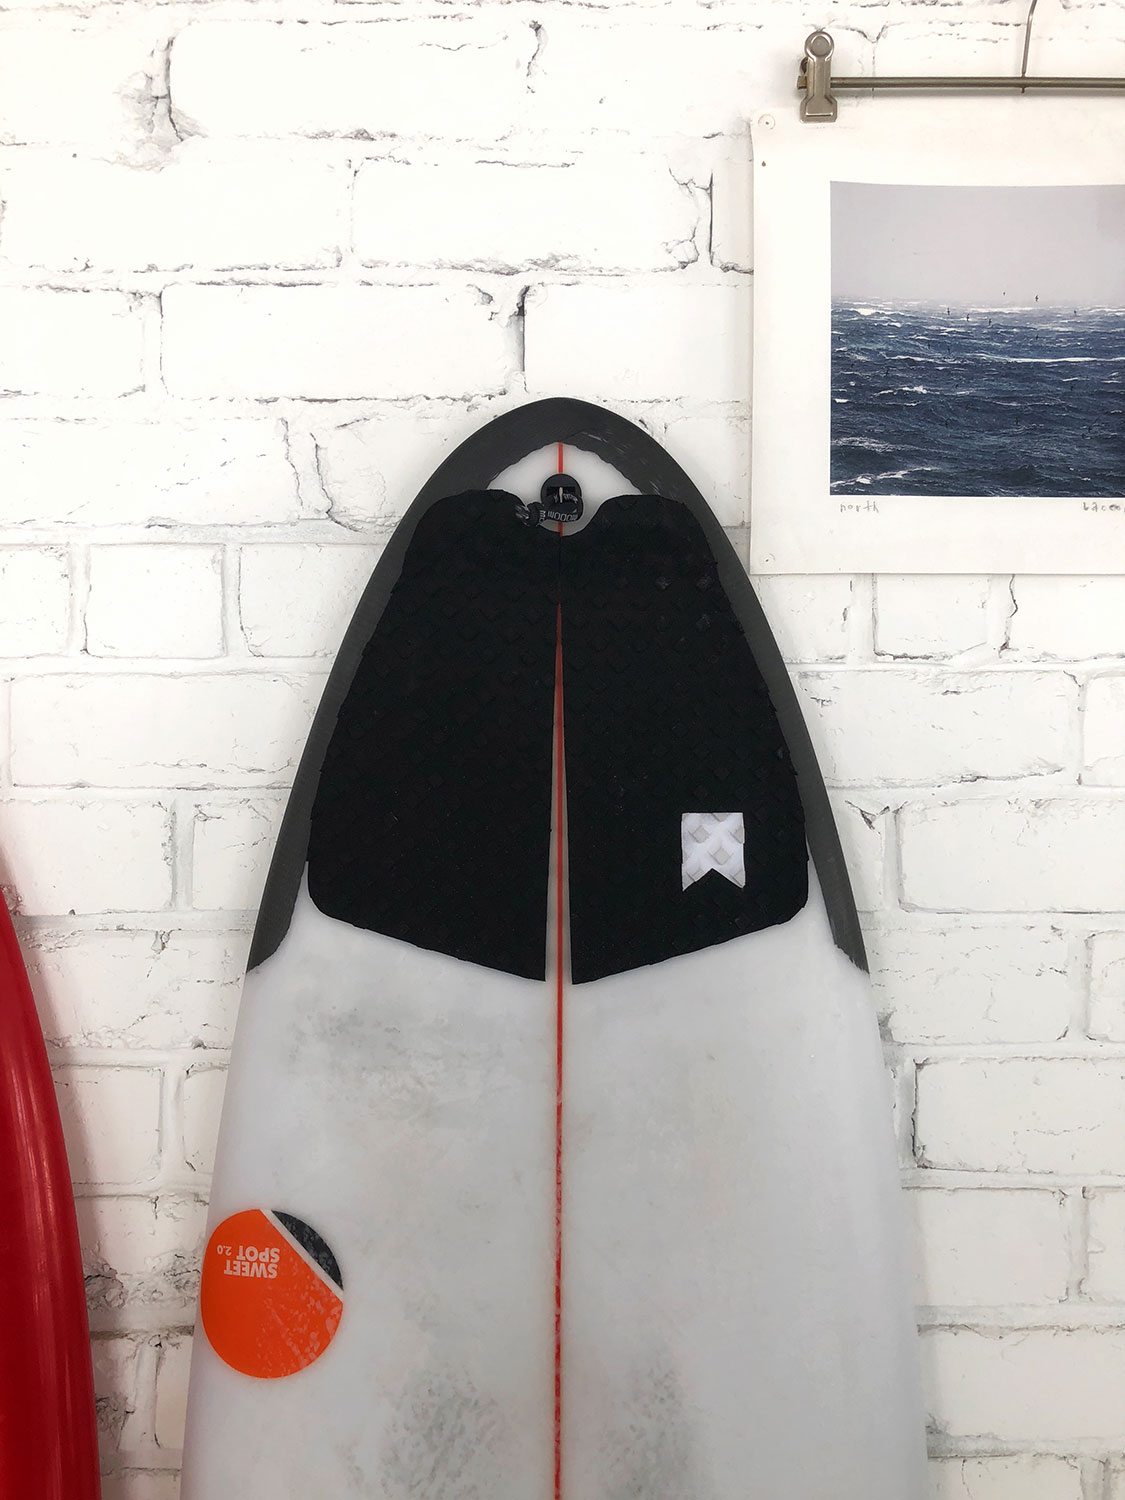 DHD Sweet Spot 2.0 Surfboard Review